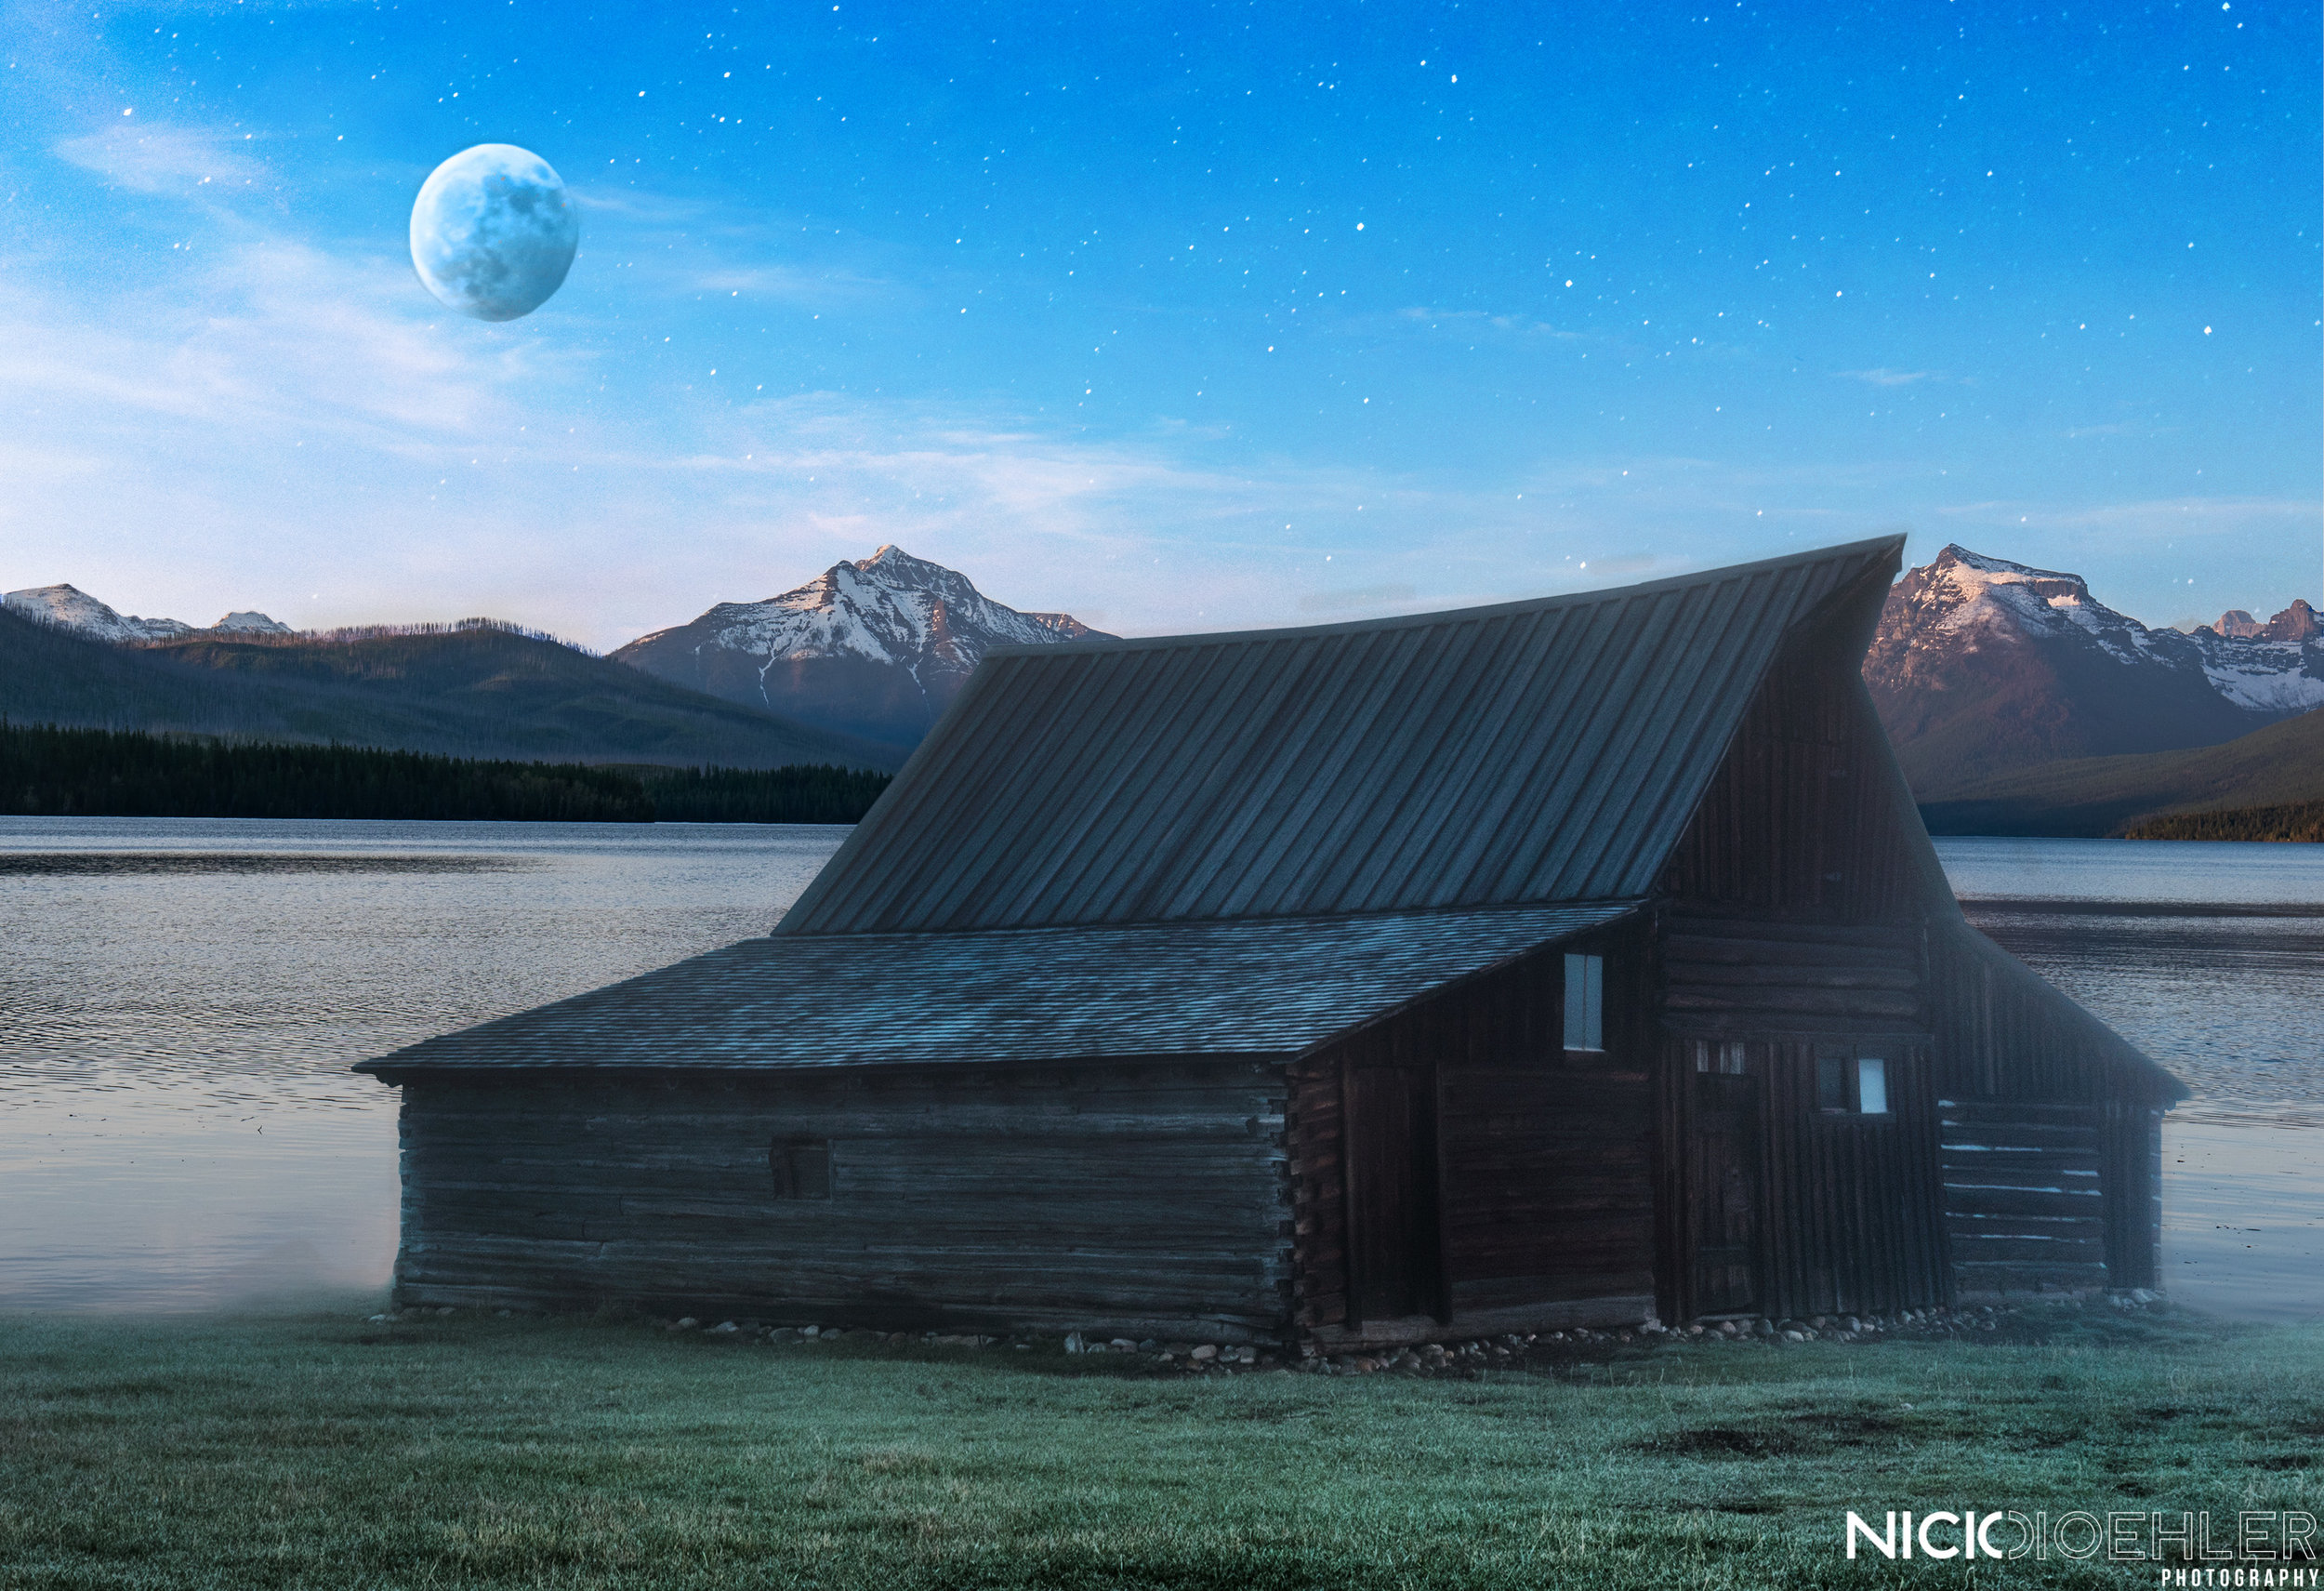 Lake House Moonrise - This image was created to bring the idea of a walk in pool. This image has the moody grass fading into a lake that is from Montana.